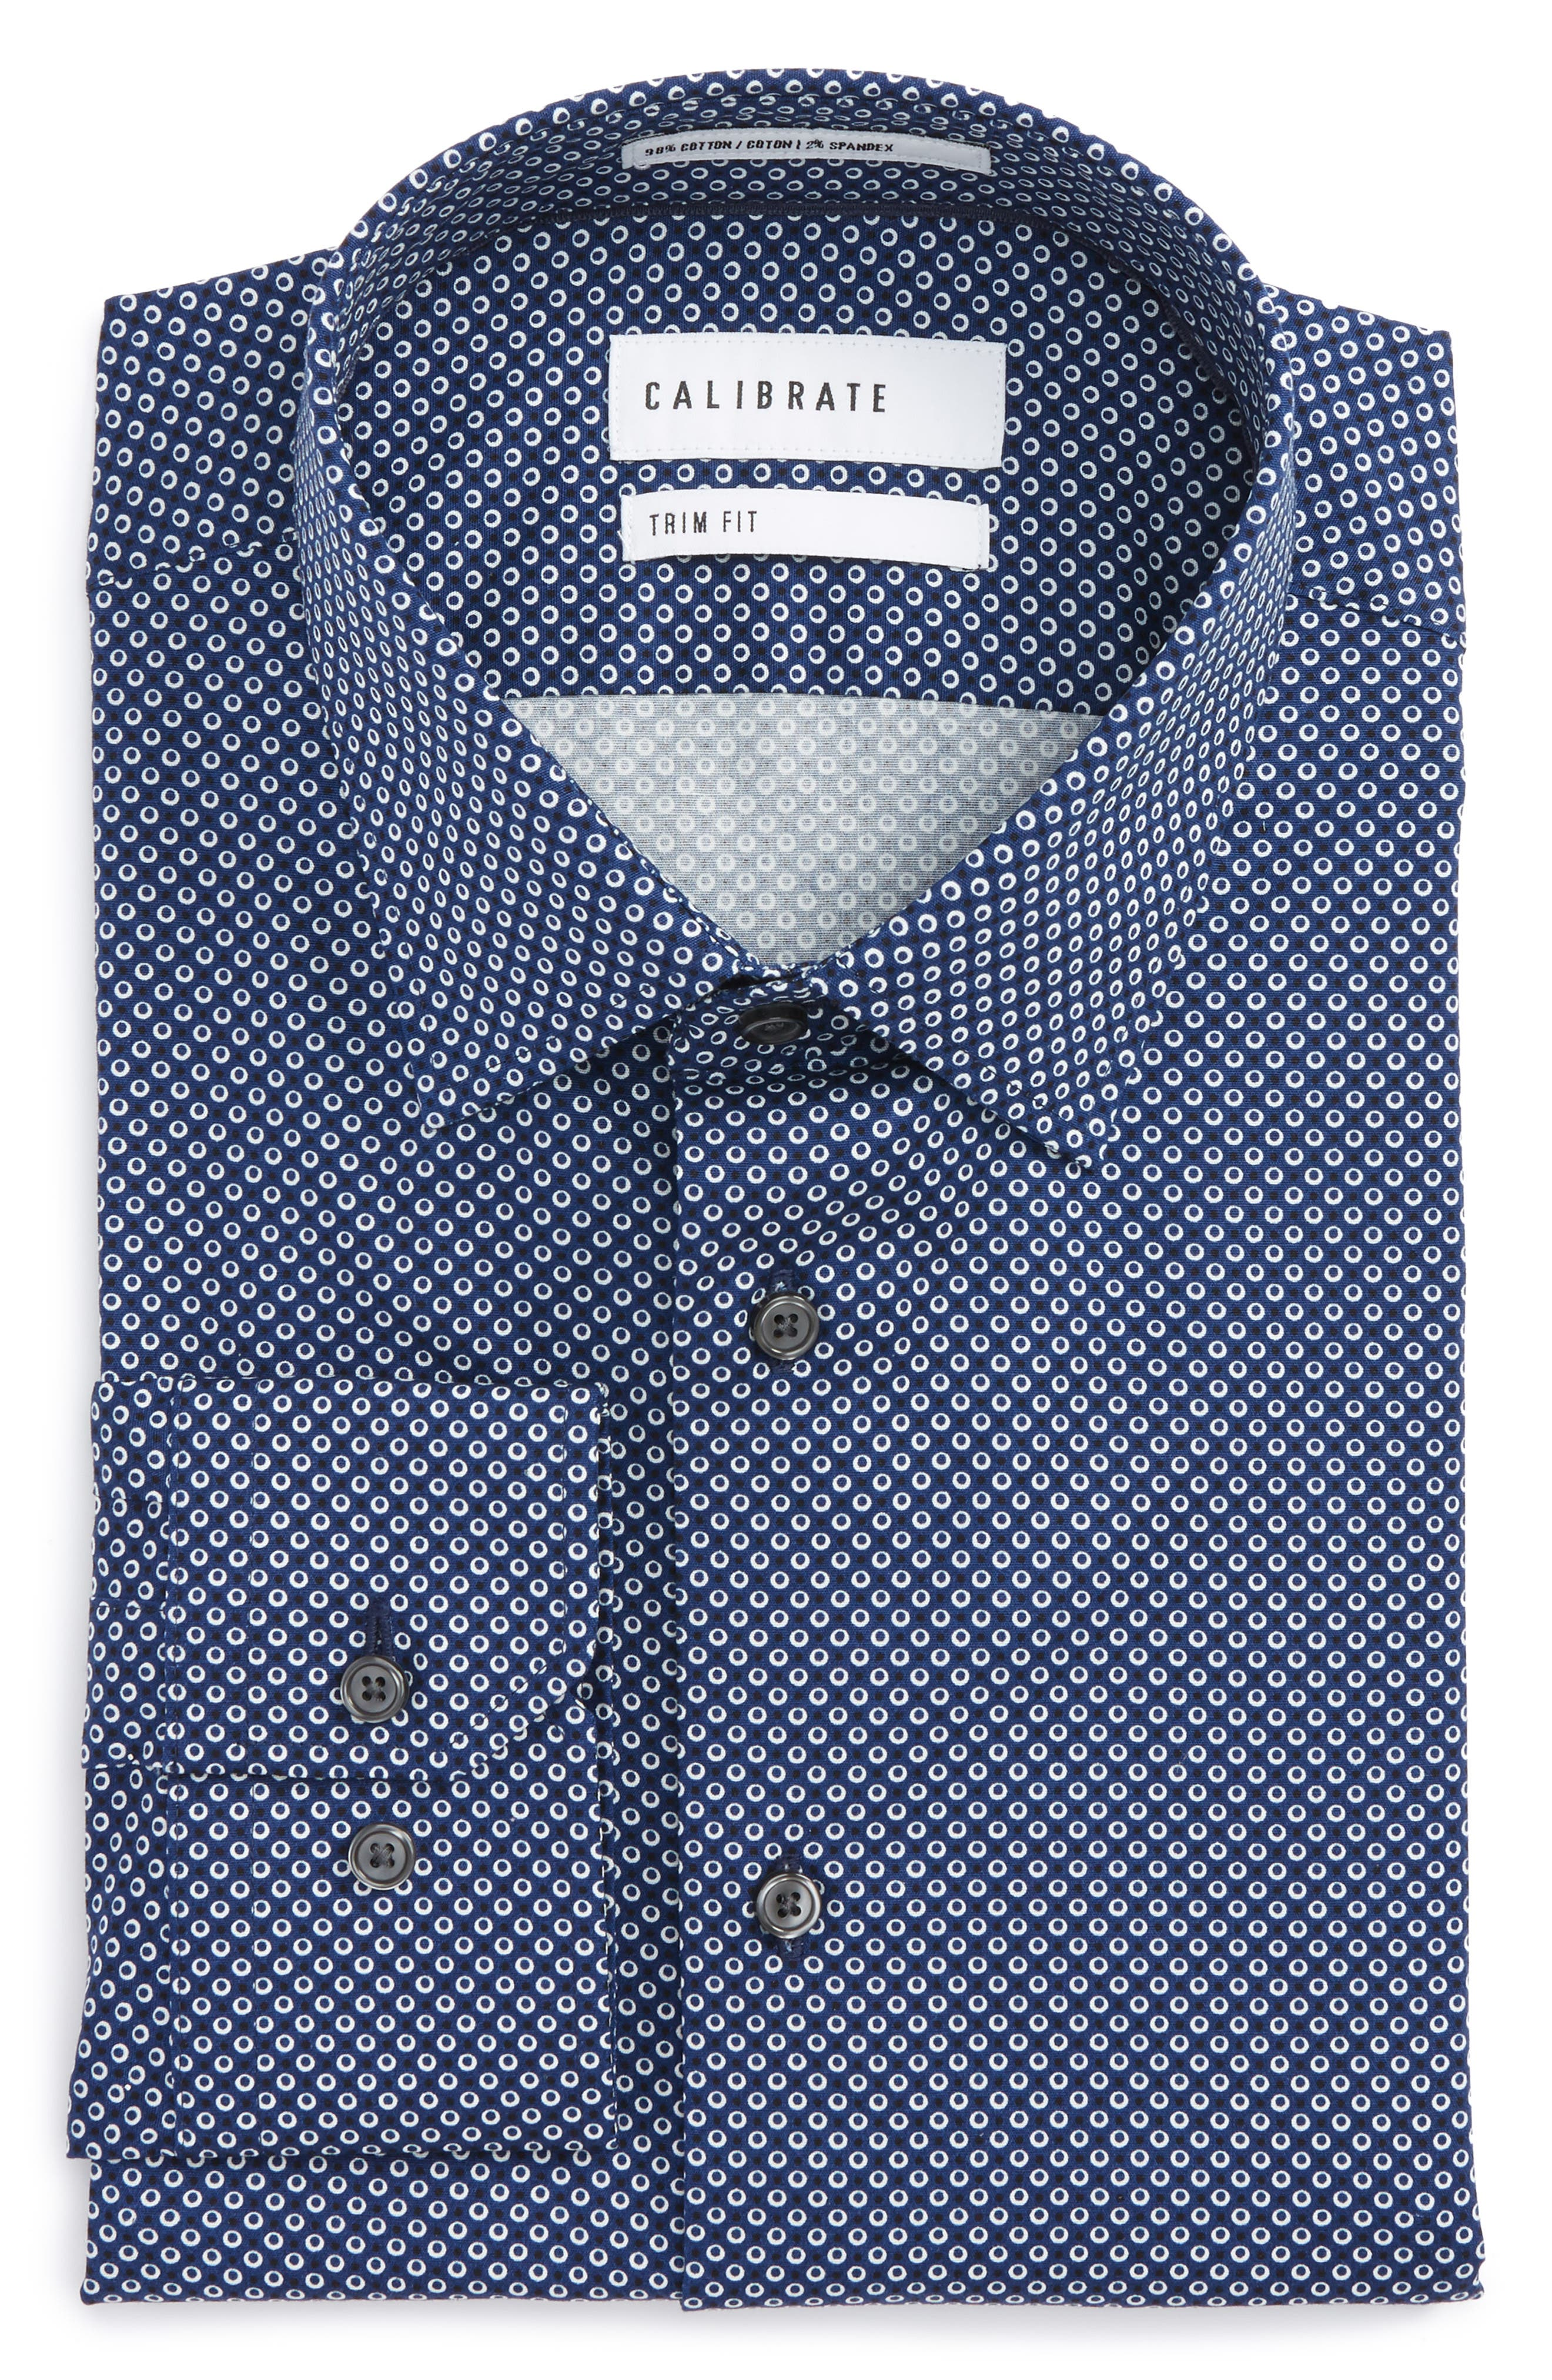 Calibrate Trim Fit Dot Dress Shirt